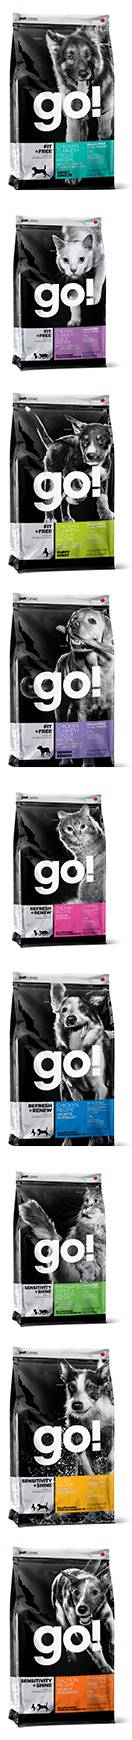 Petcurean's GO! Lineup for dogs and cats.    Created to put more life into your pet. GO! is nutrient-rich and energy packed; a true fitness food for everyday dogs and cats, plus those with special dietary needs.